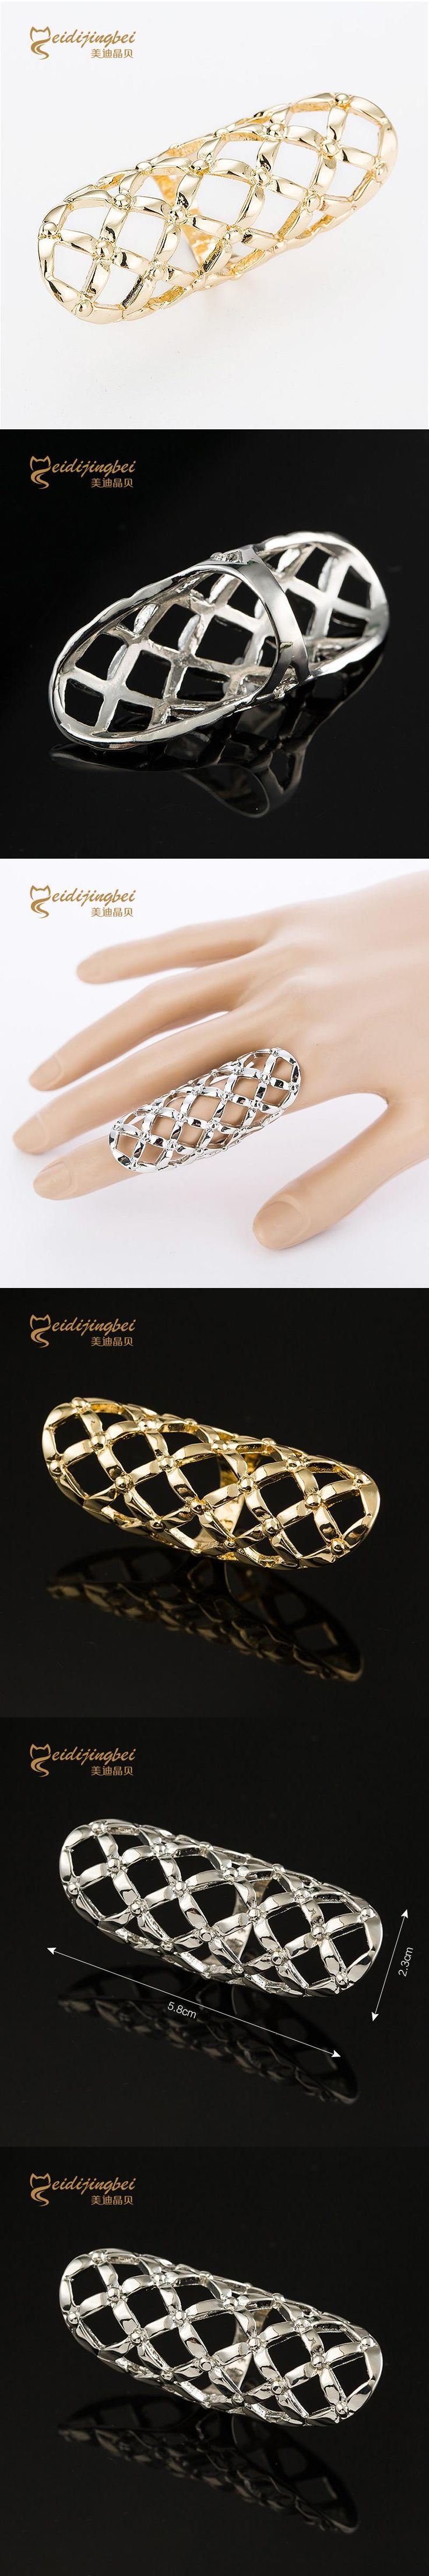 Long full finger rings for women gold/silver color hollow out female ring zinc alloy fashion jewelry anel feminino MDJB019